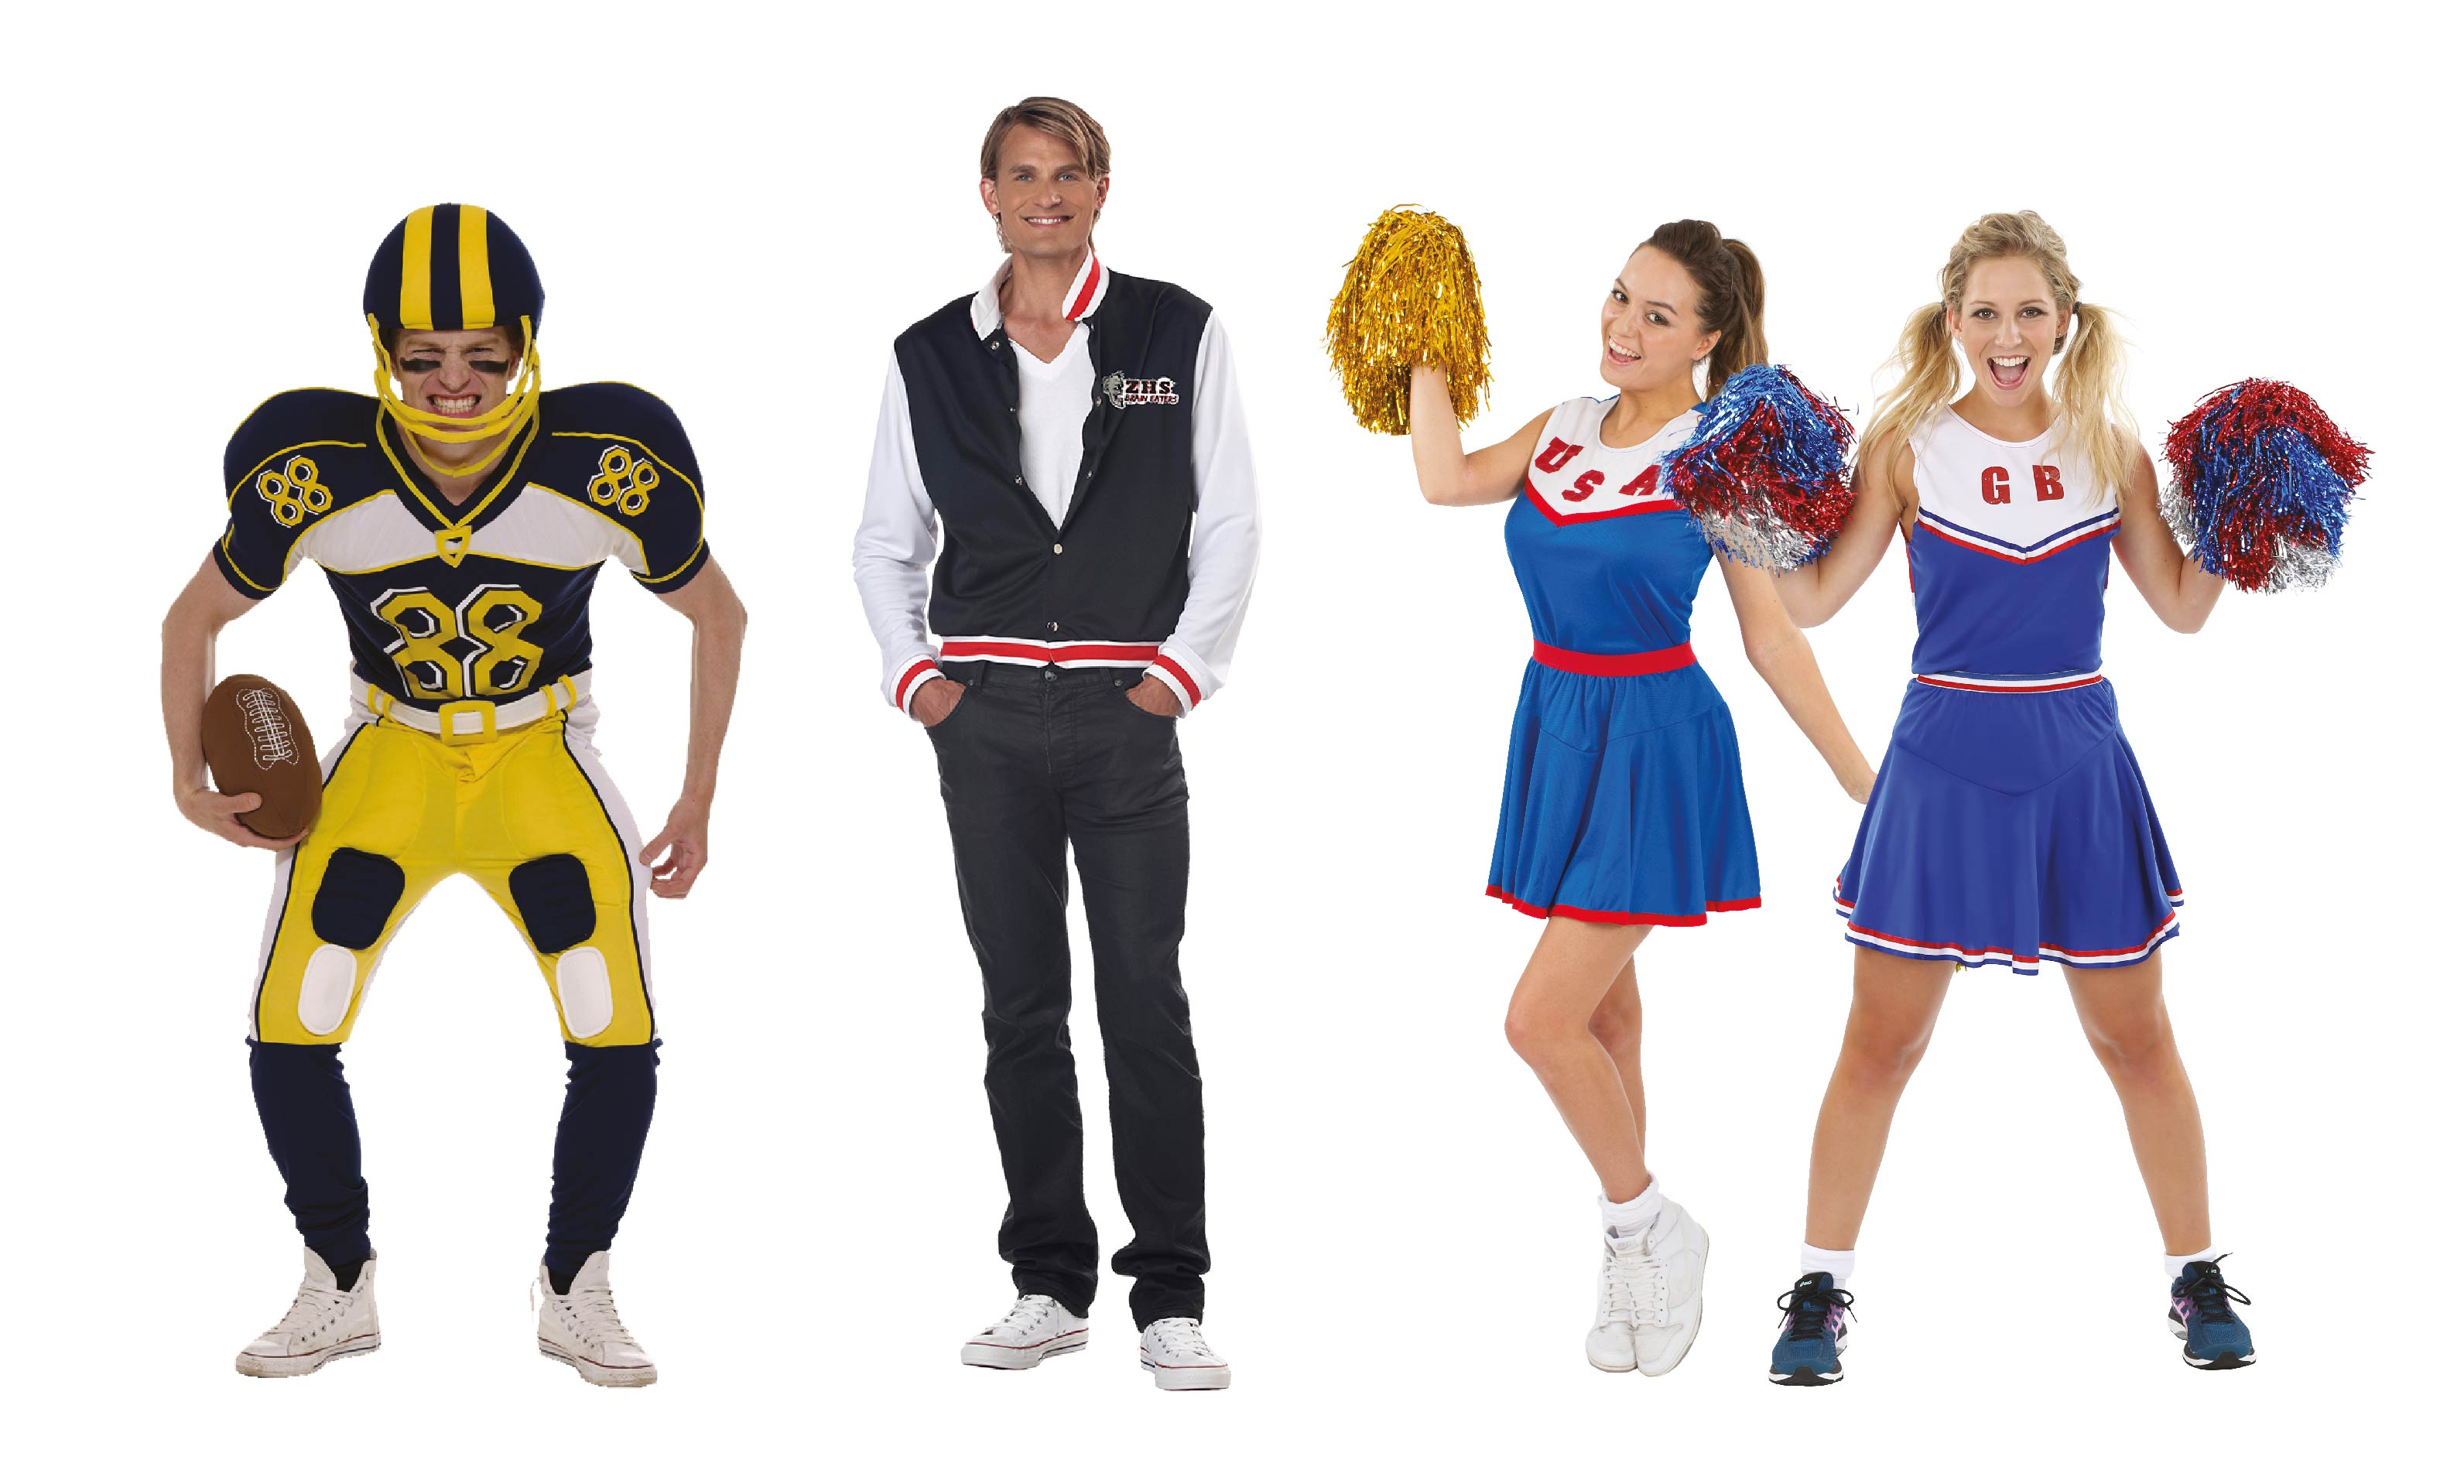 Group of people wearing American High School Costumes.